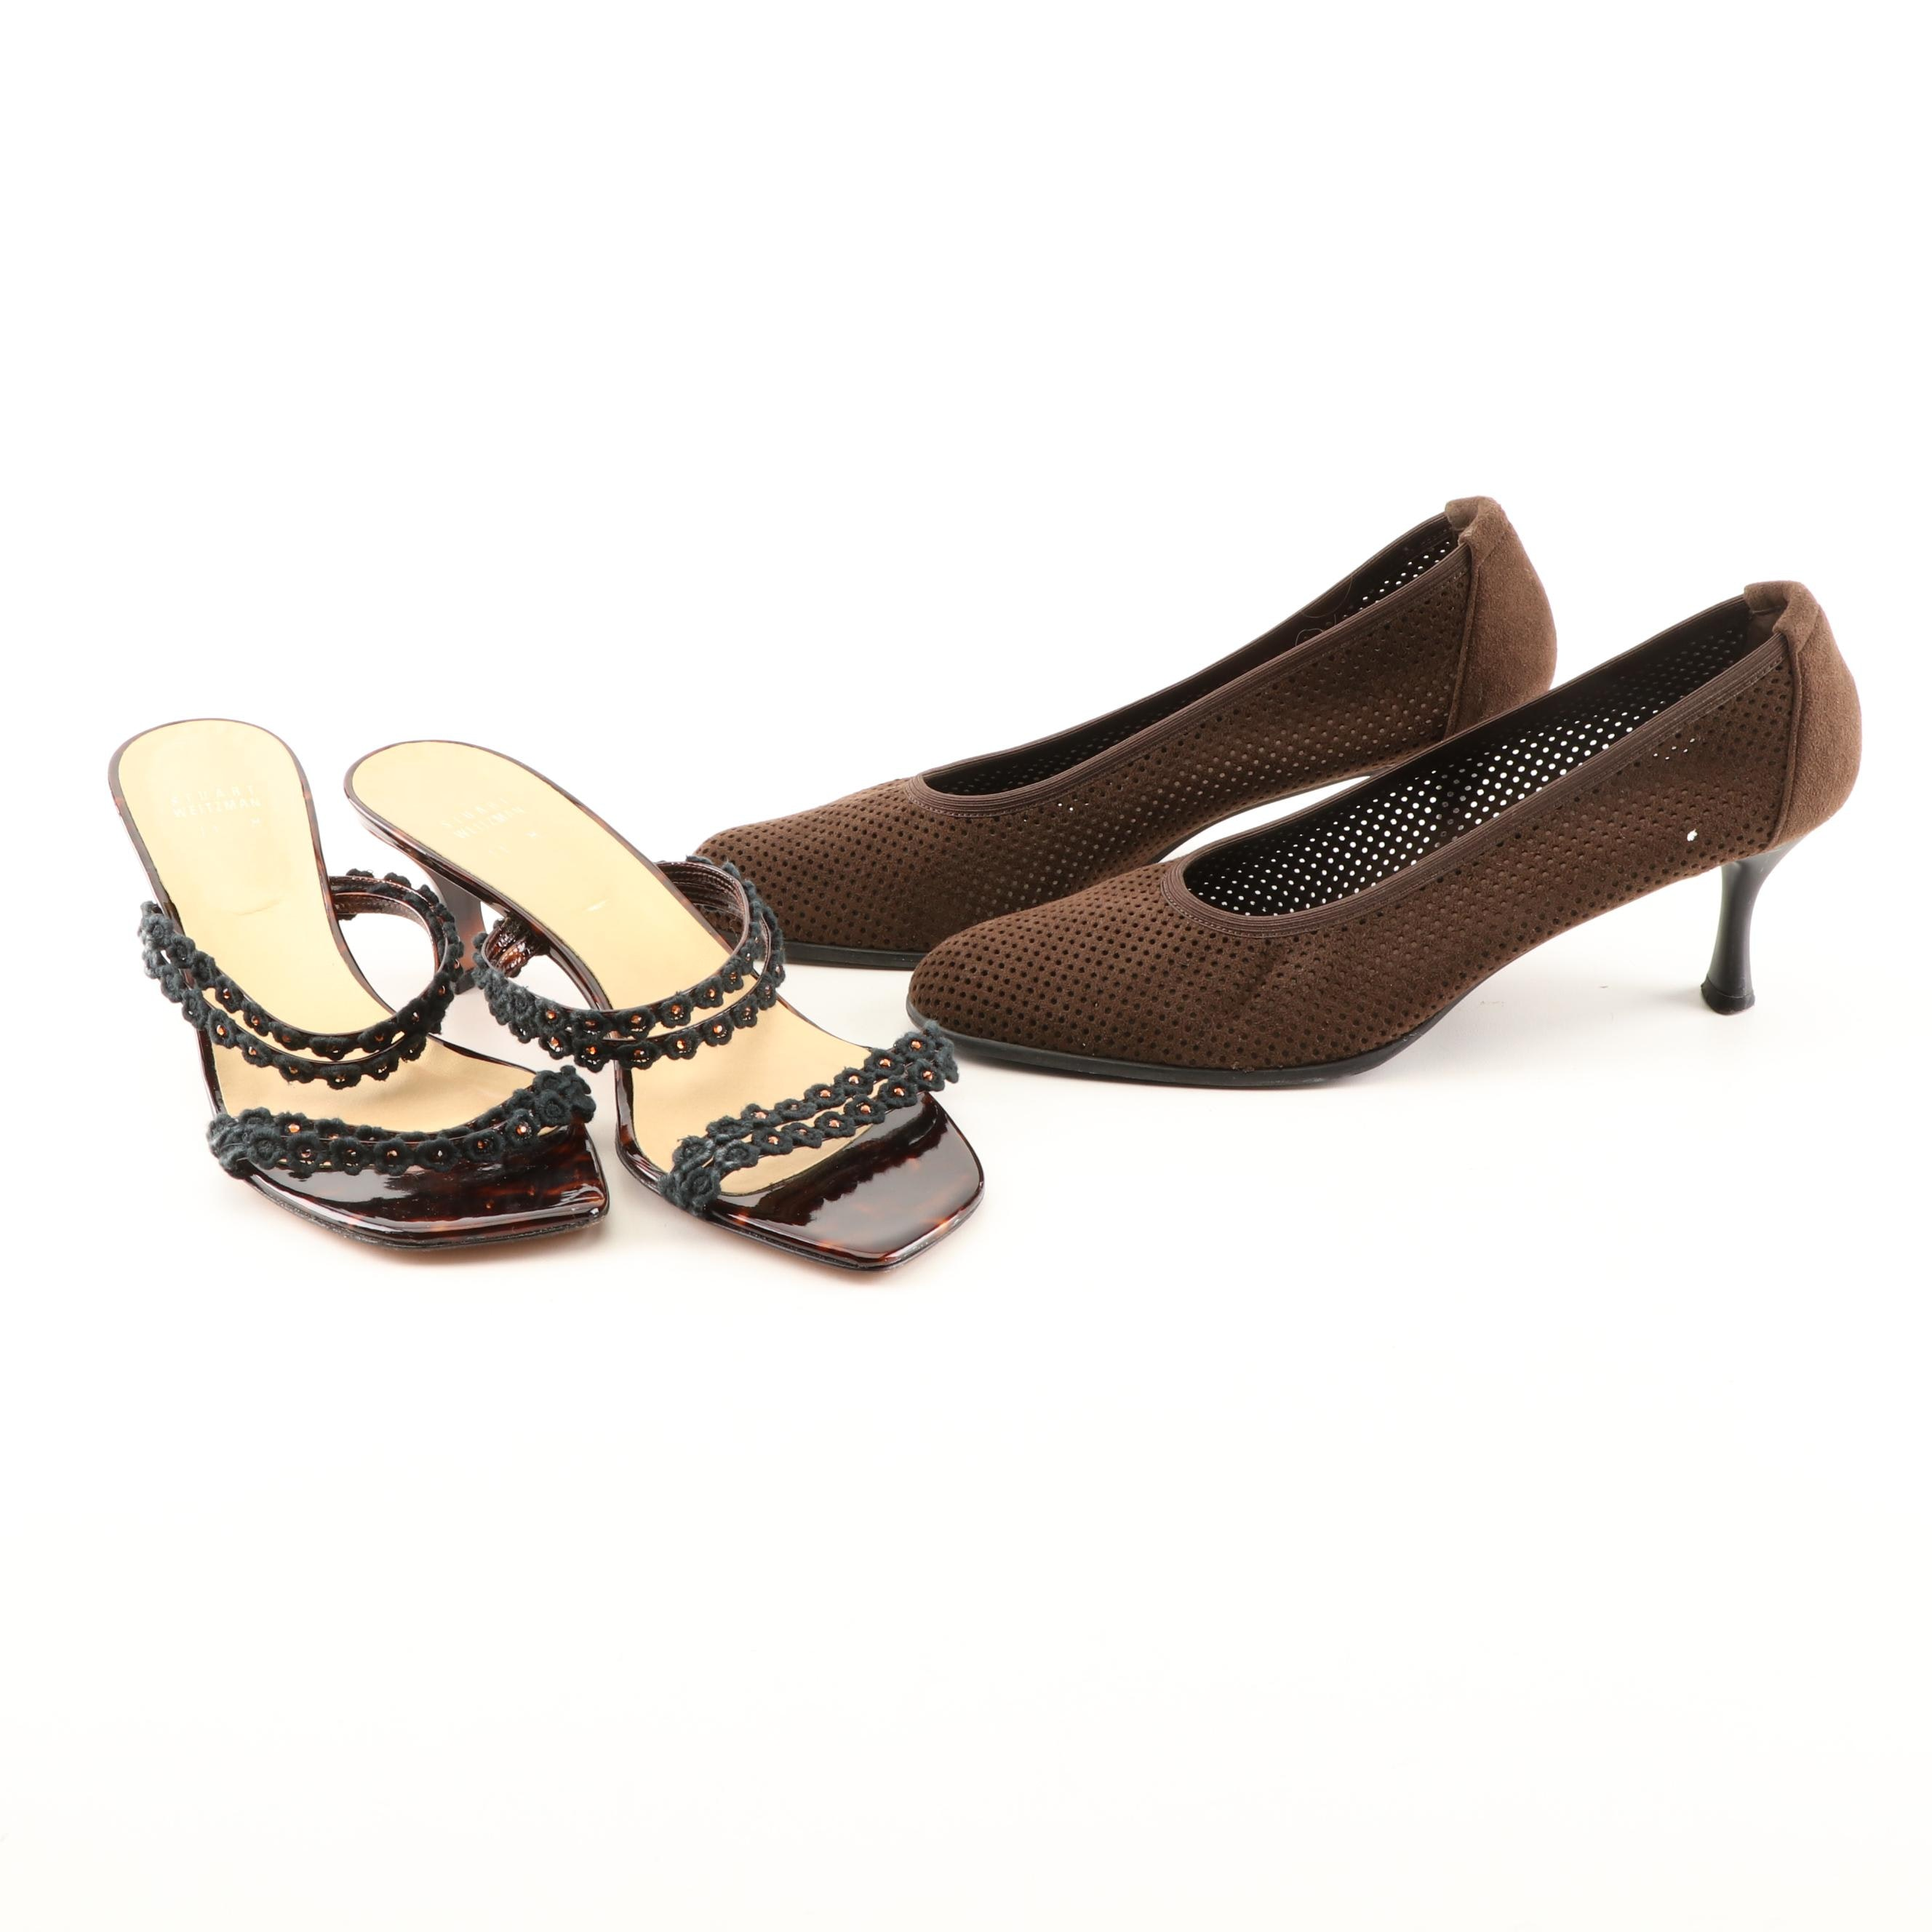 Stuart Weitzman Brown Suede Pumps and Patent Leather Sandals